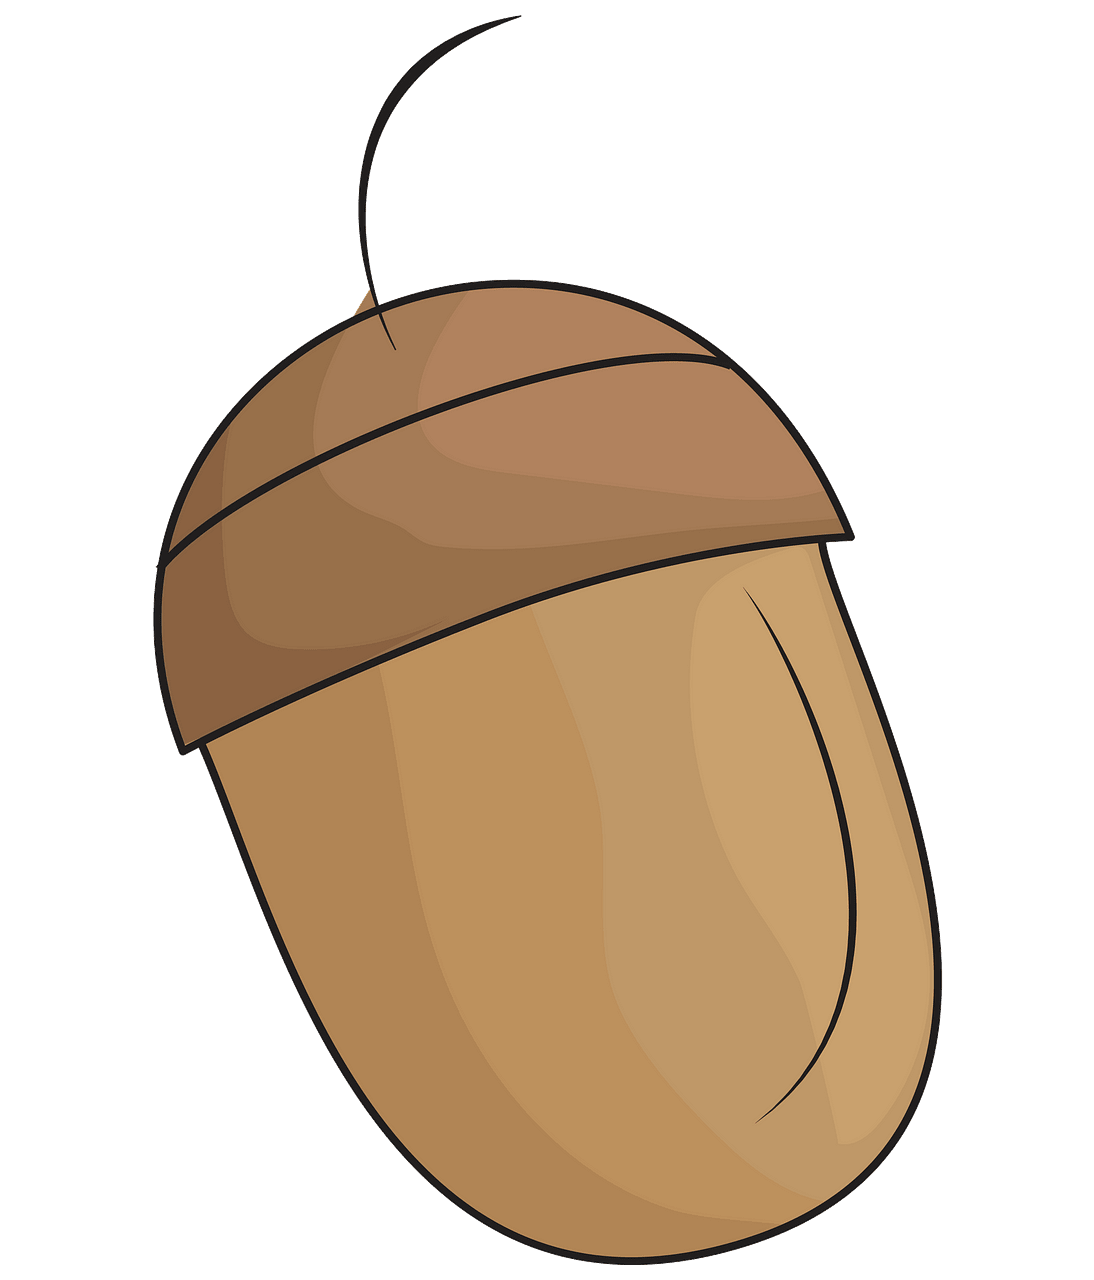 Acorn clipart. Free download..